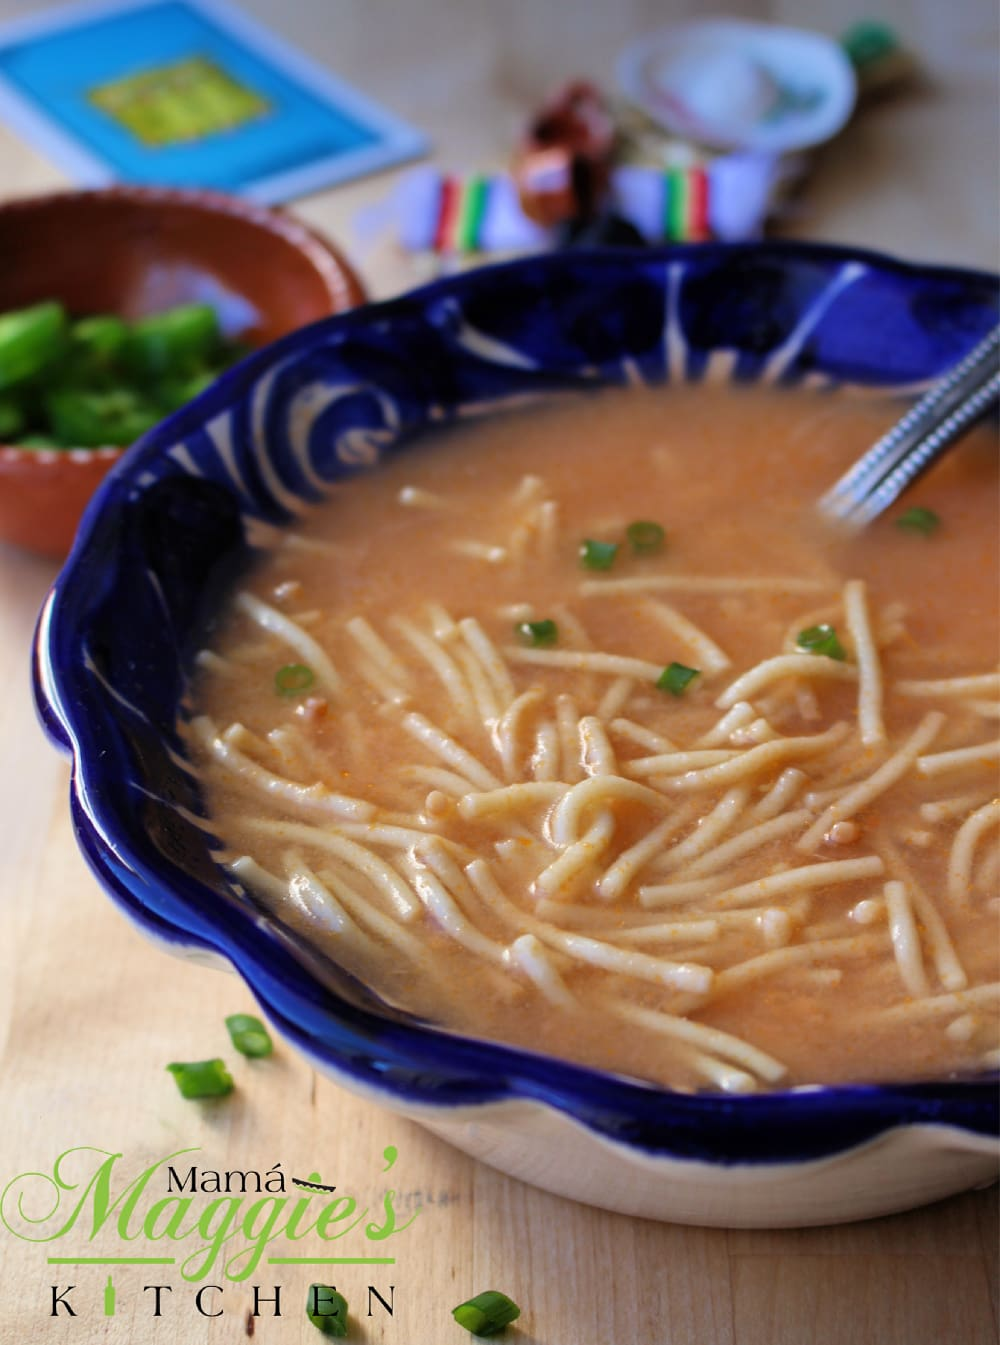 A blue bowl with Sopa de Fideo (Mexican Noodle Soup) surrounded by decorative clay plate.